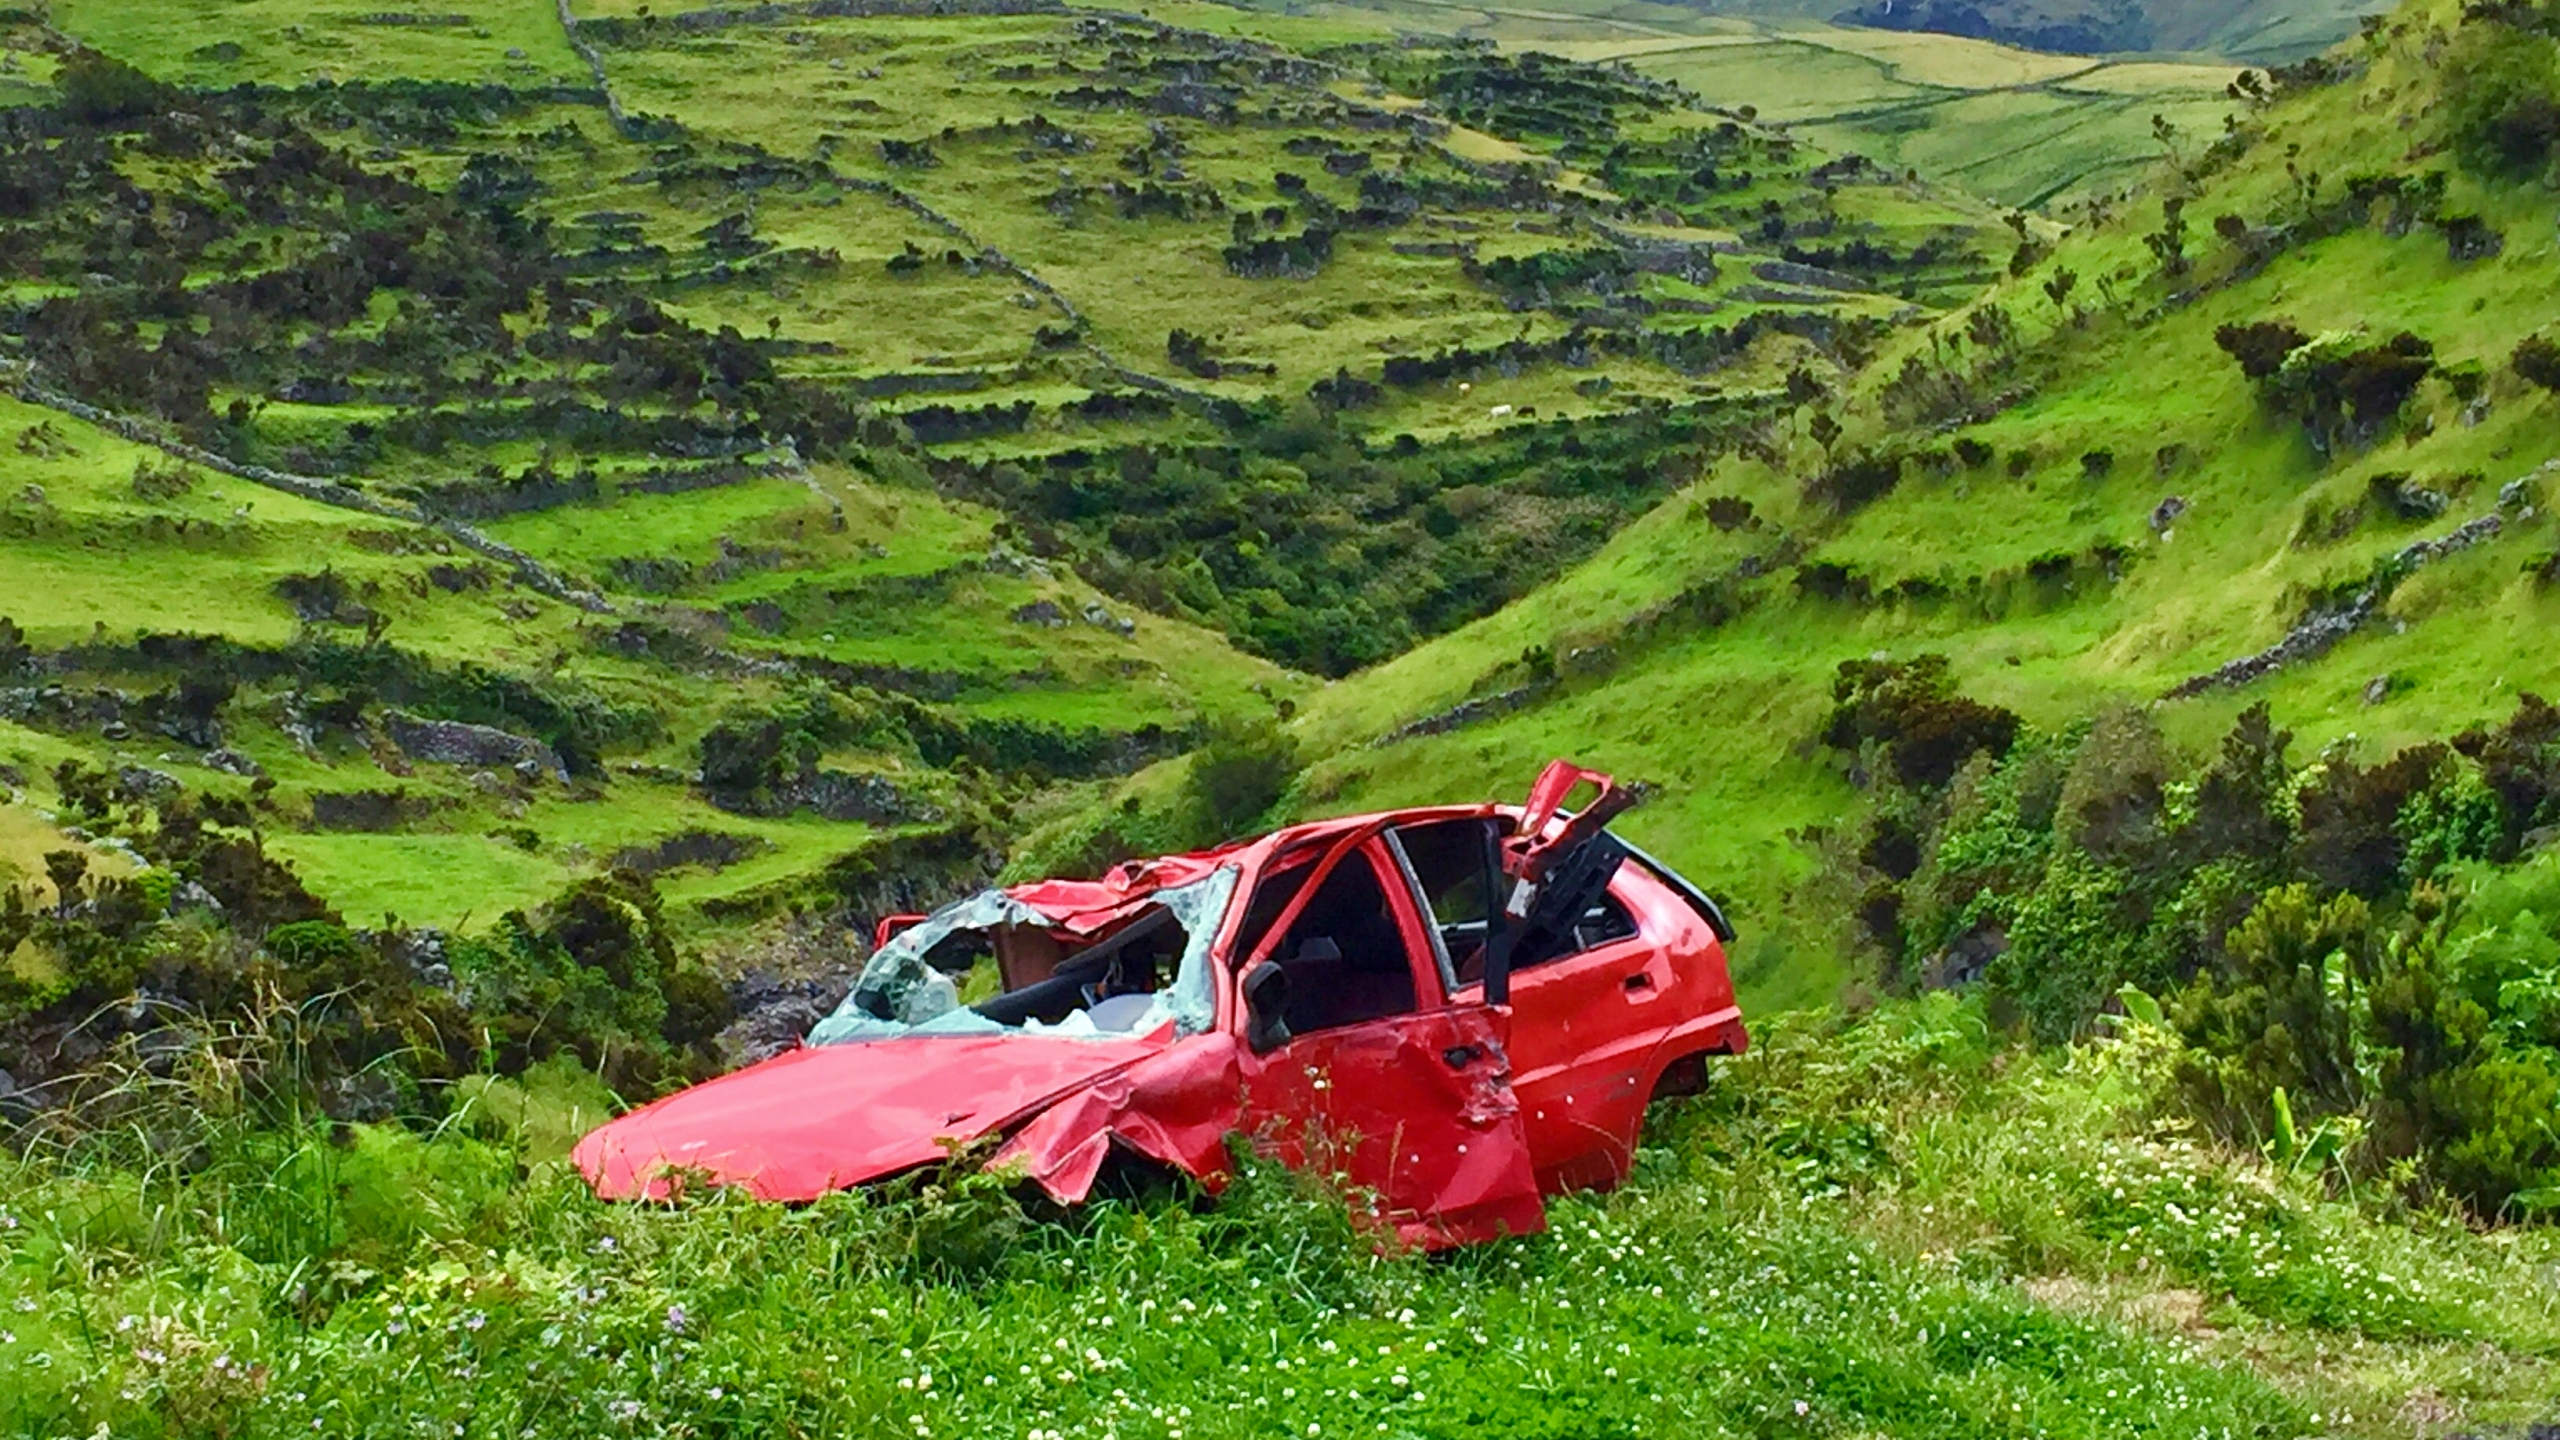 Heavily damaged red car on a grassy green hill